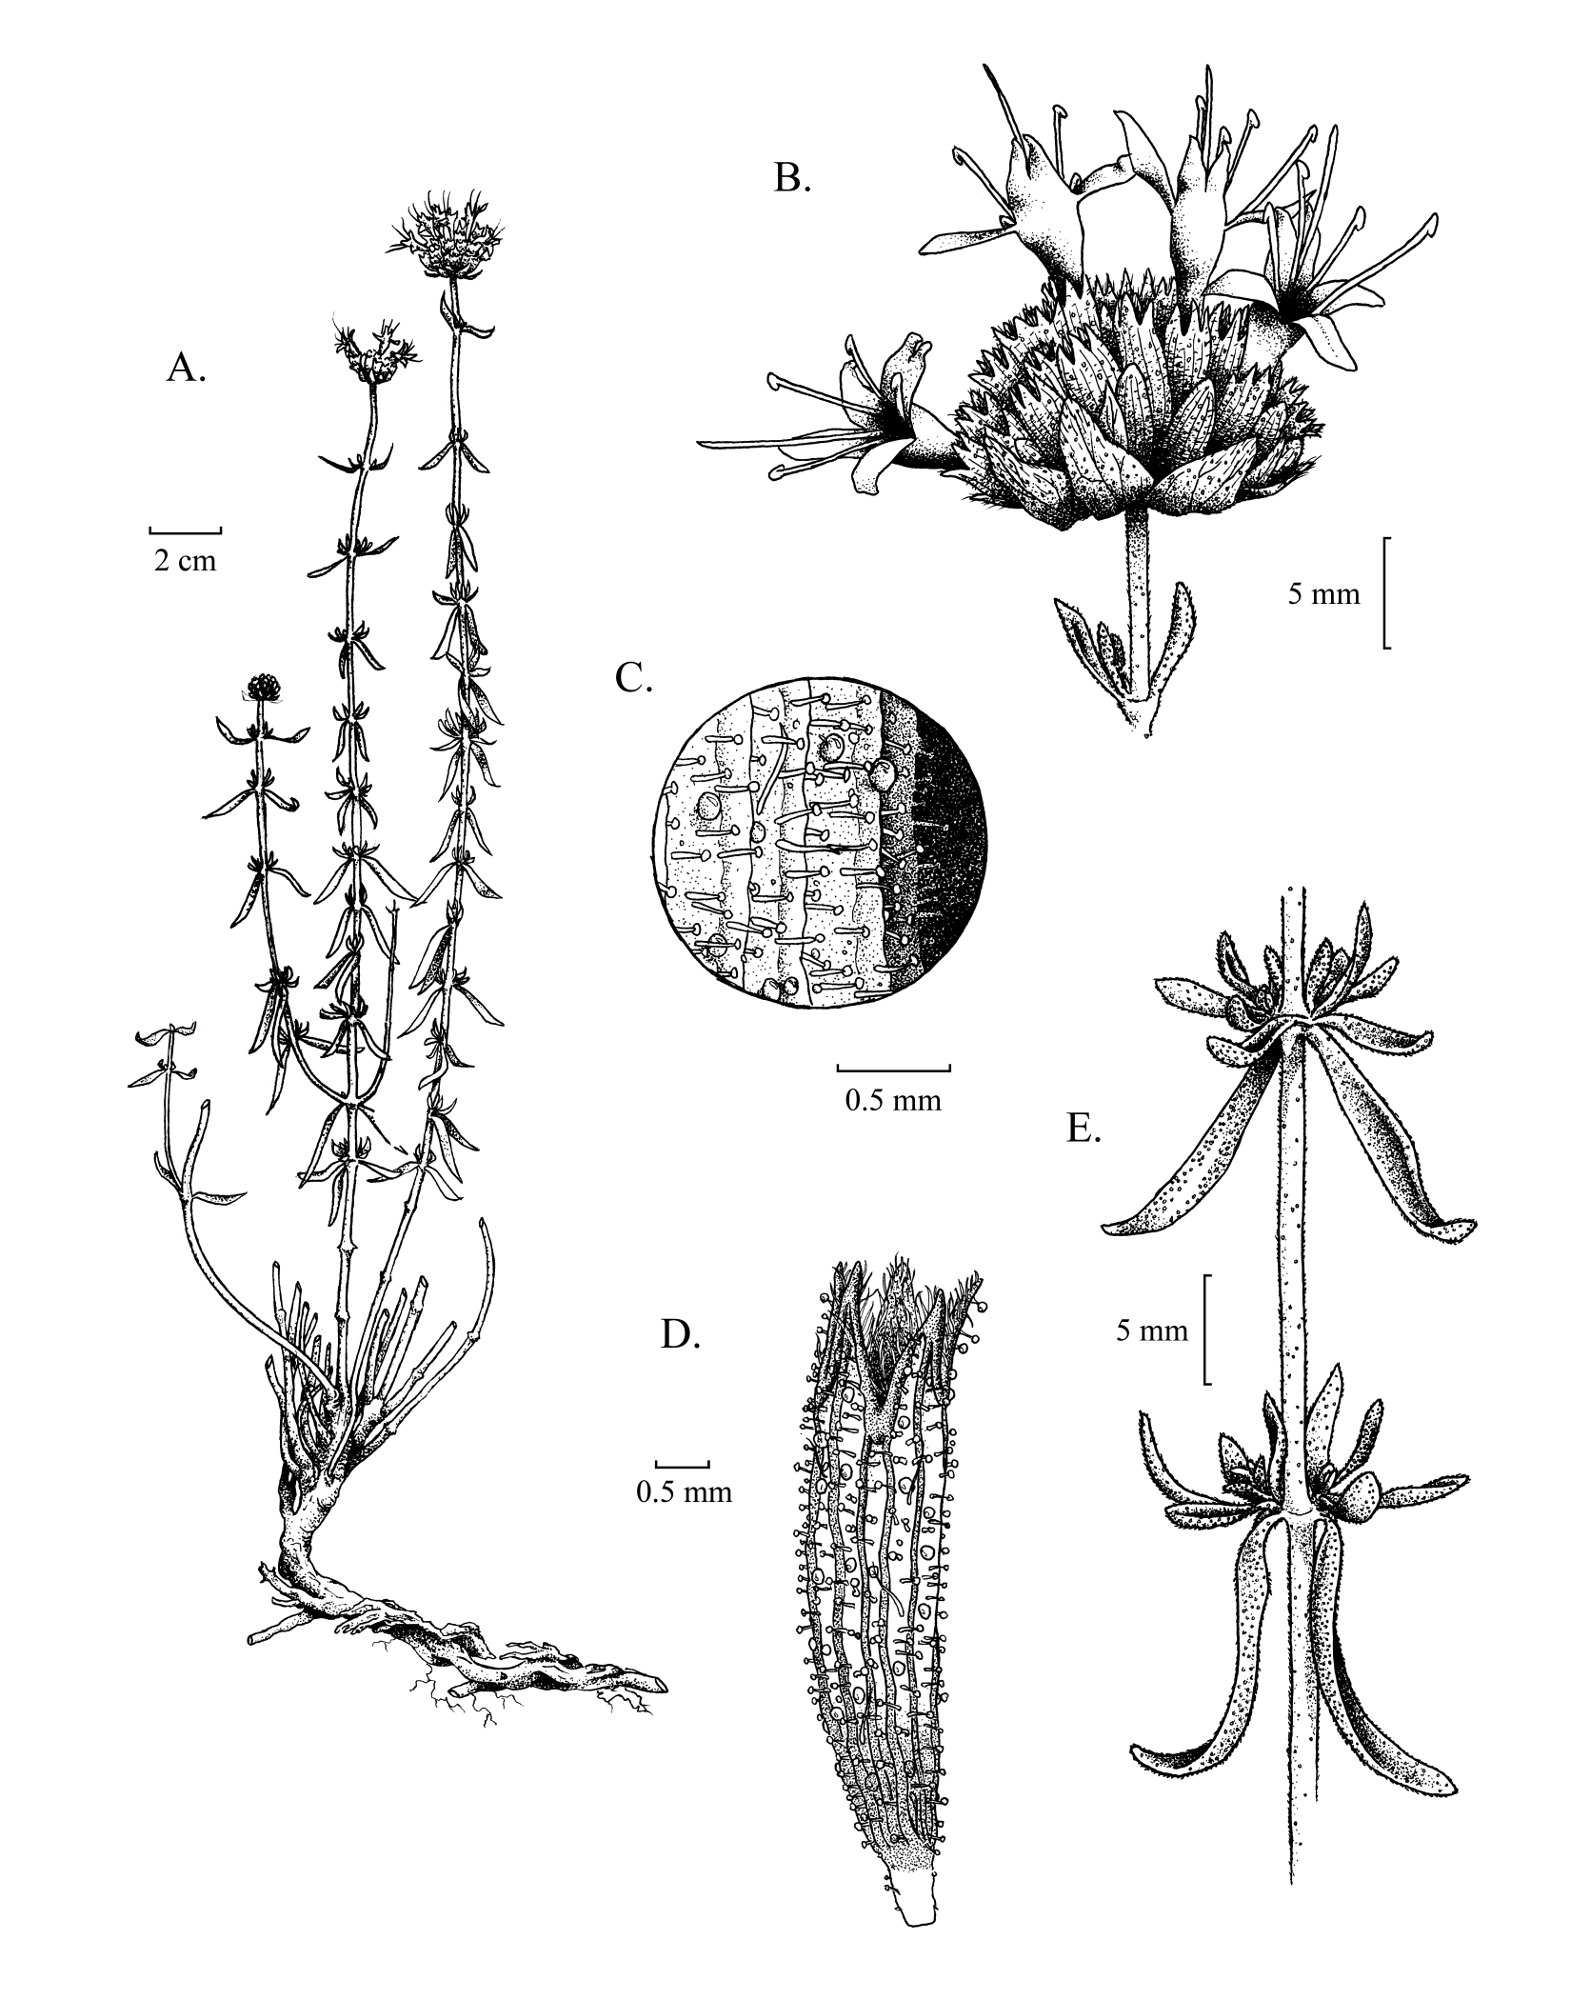 Monardella angustifolia taxonomic illustration by Alexa DiNicola